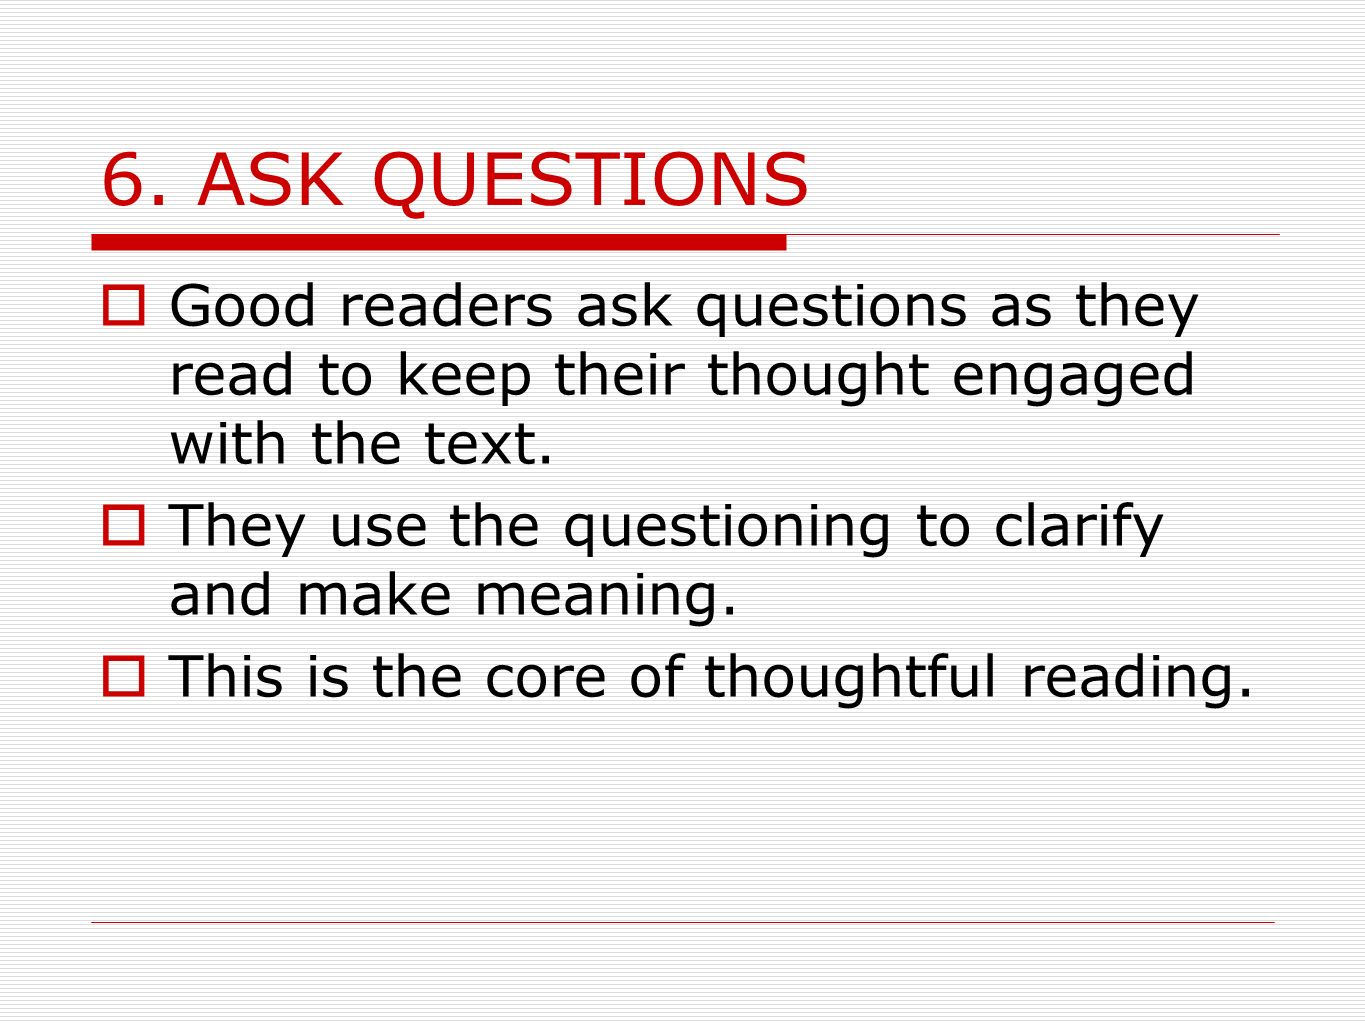 6. ASK QUESTIONS Good readers ask questions as they read to keep their thought engaged with the text.